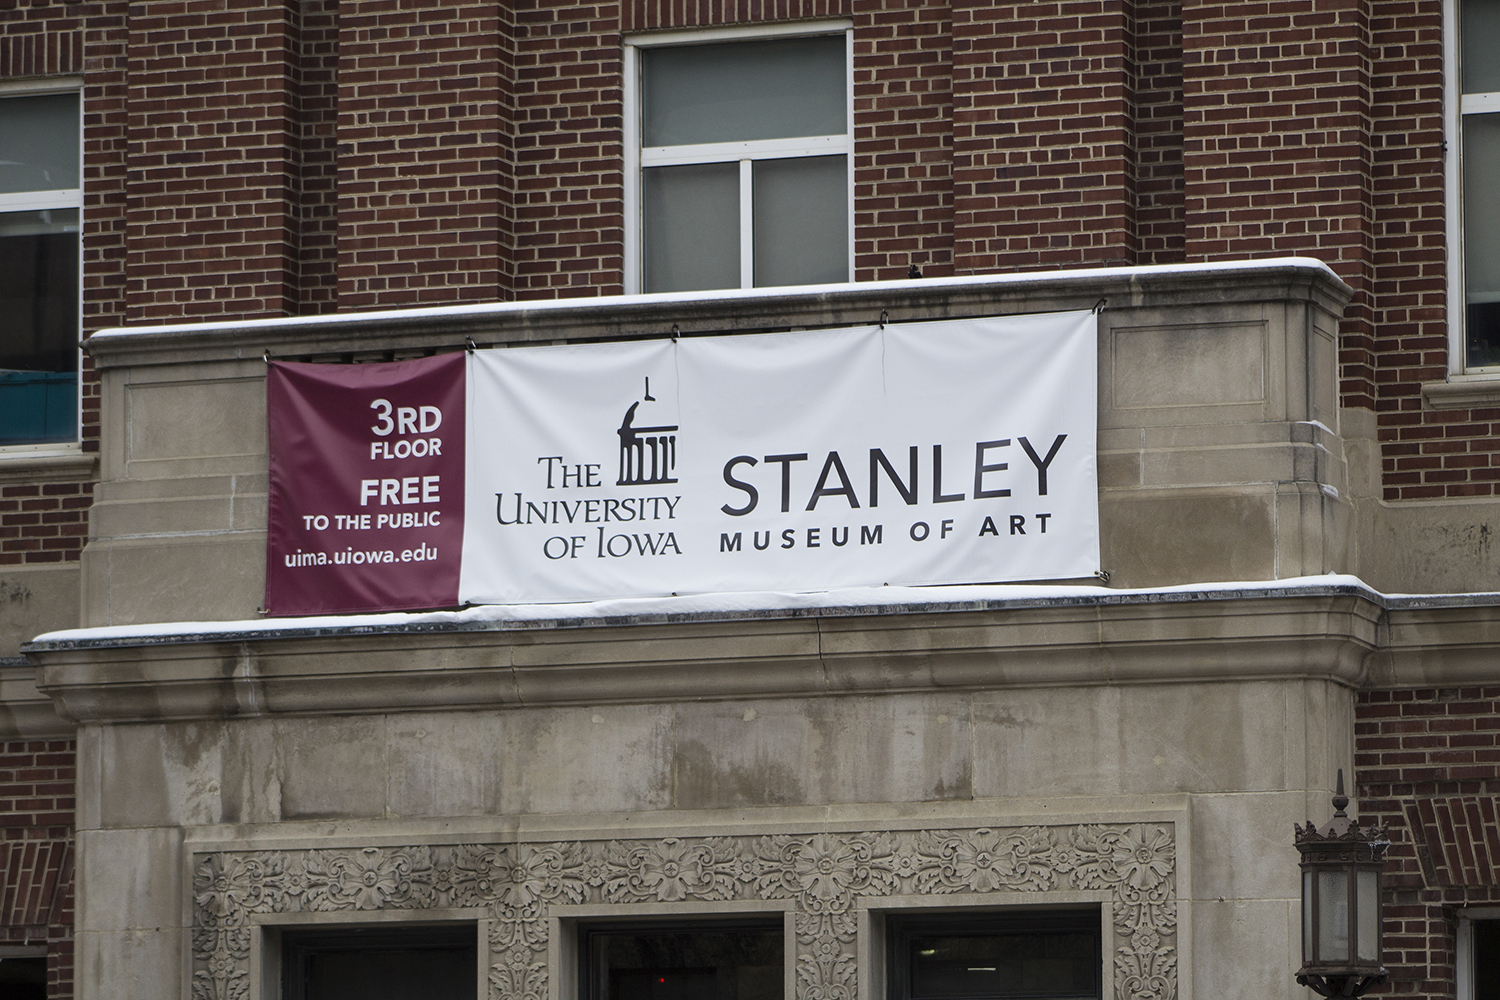 The Stanley Museum of Art sign is seen outside of the IMU on Monday, January 14, 2019.